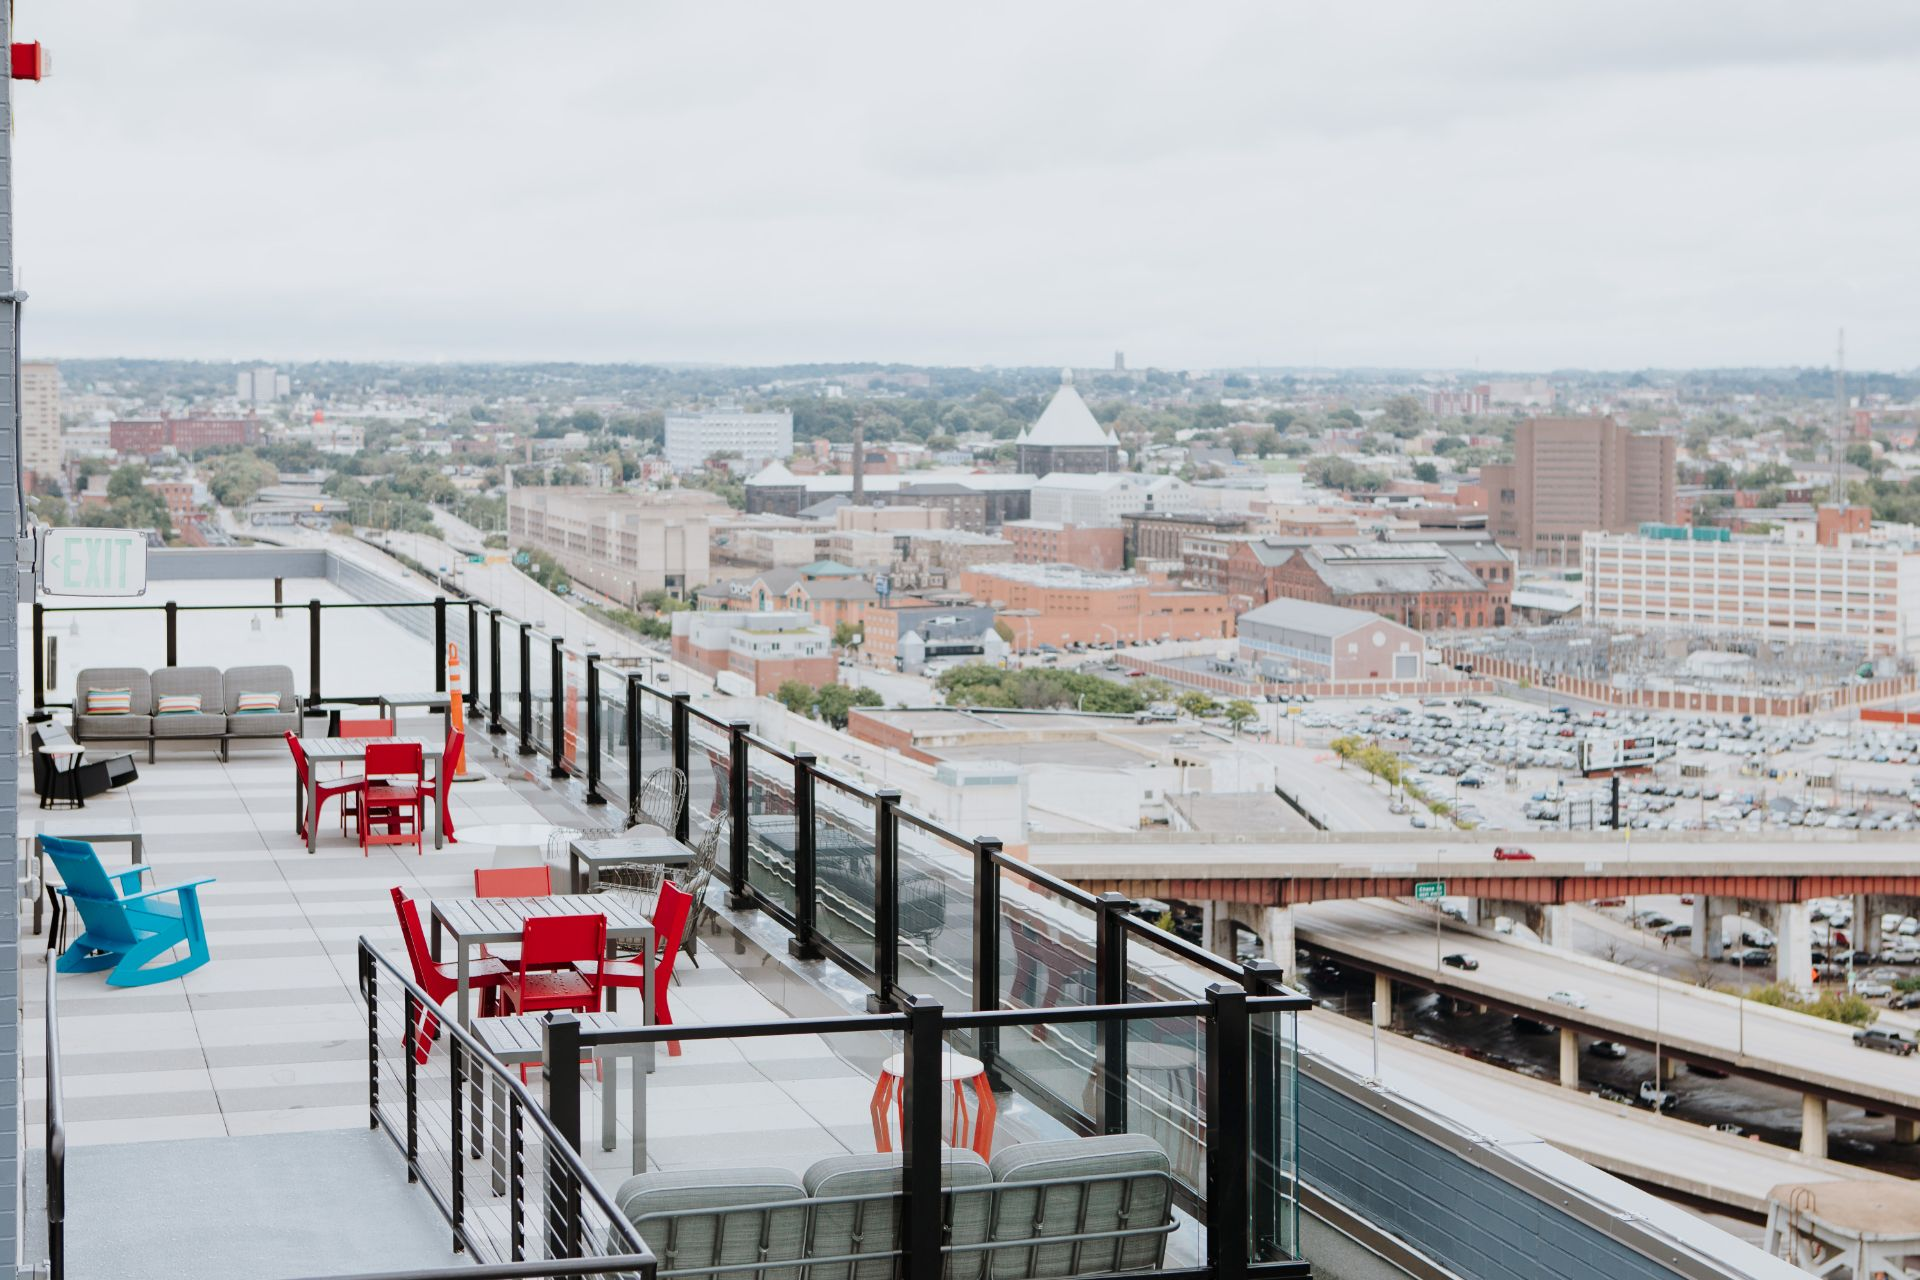 Rooftop lounge with seating and view of city